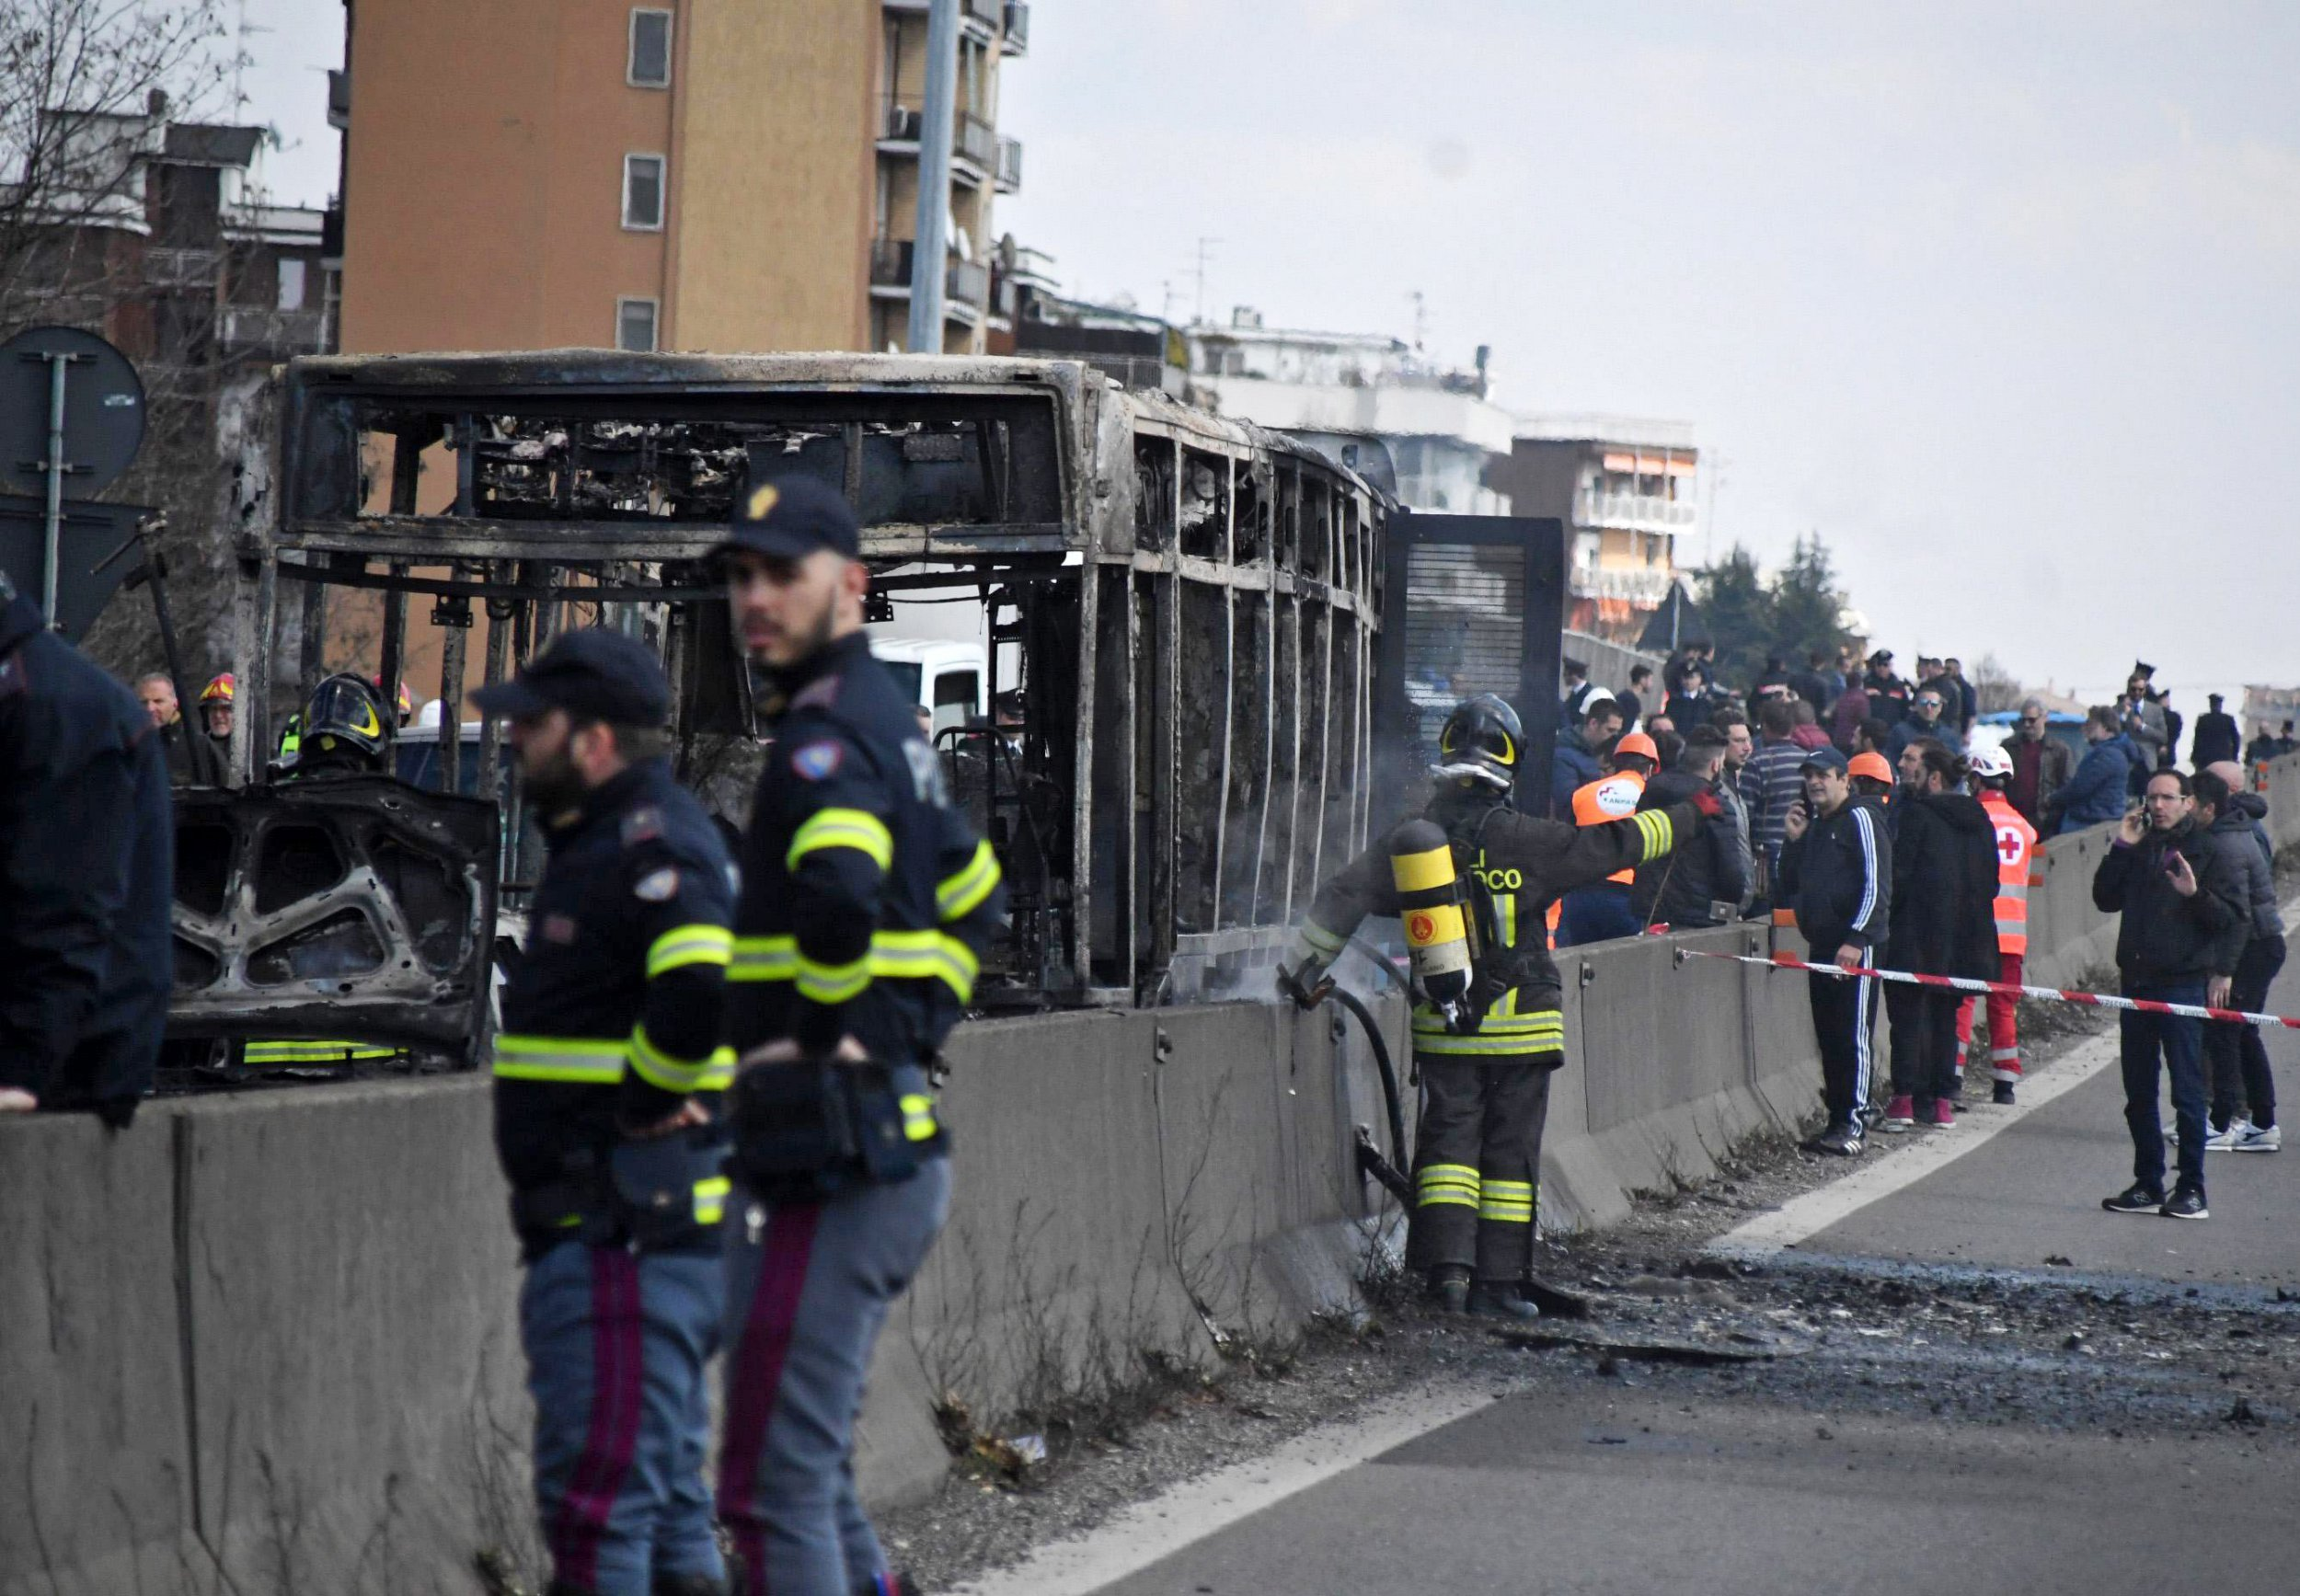 epa07450610 Firefighters and policemen where a bus was set on fire by a driver in Milan, Italy, 20 March 2019. A 47-year-old man was held by Carabinieri police after allegedly hijacking a bus with schoolchildren aboard and subsequently starting a fire inside the vehicle, sources said. According to an initial reconstruction, the man hijacked the bus with 51 pupils of a middle school at Vailati di Crema, in the northern province of Cremona, and said he wanted to kill himself. EPA/DANIELE BENNATI